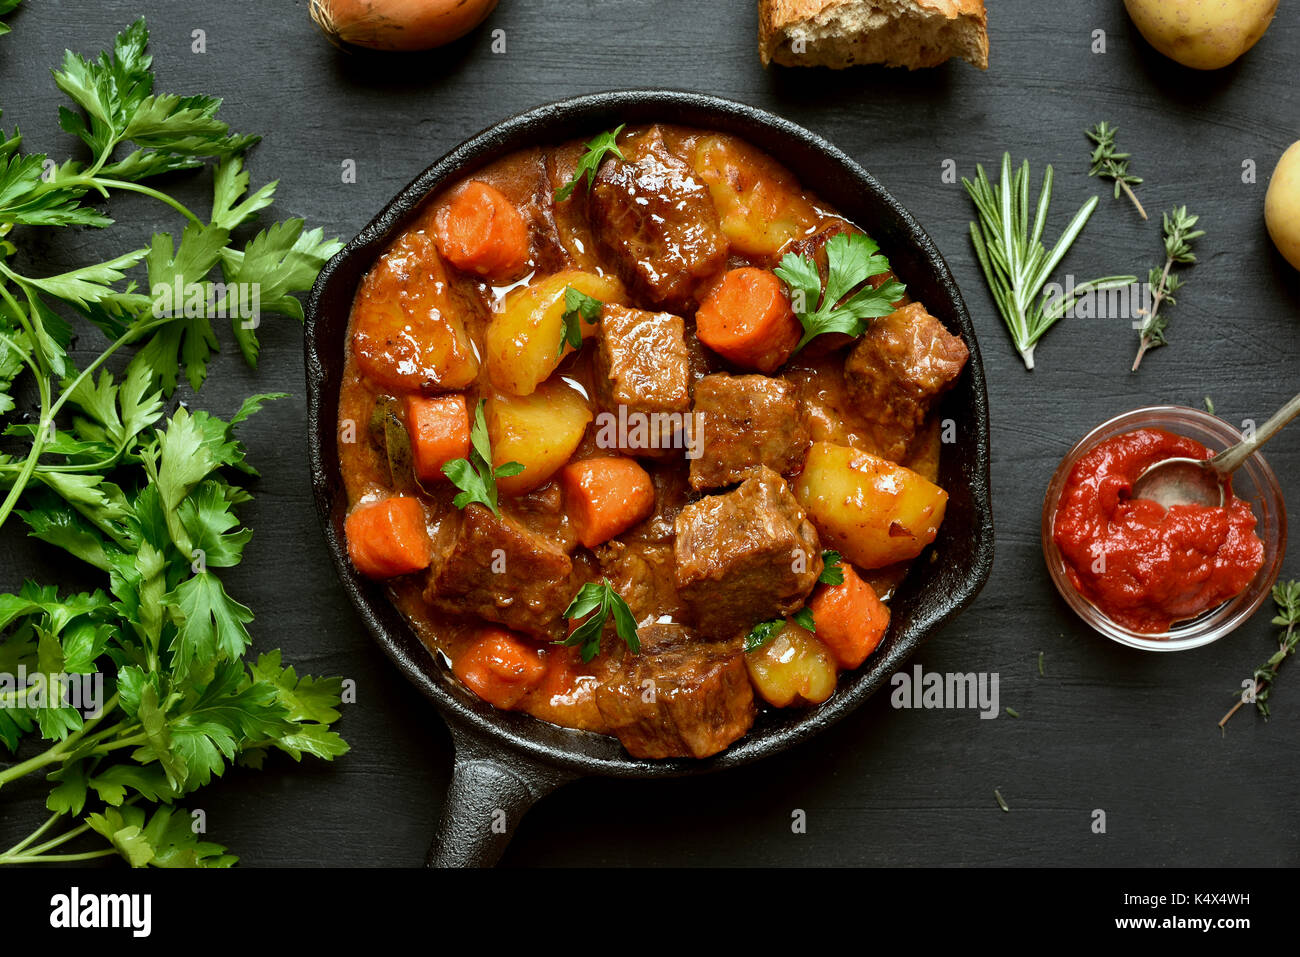 Stewed beef and vegetables in frying pan, top view - Stock Image